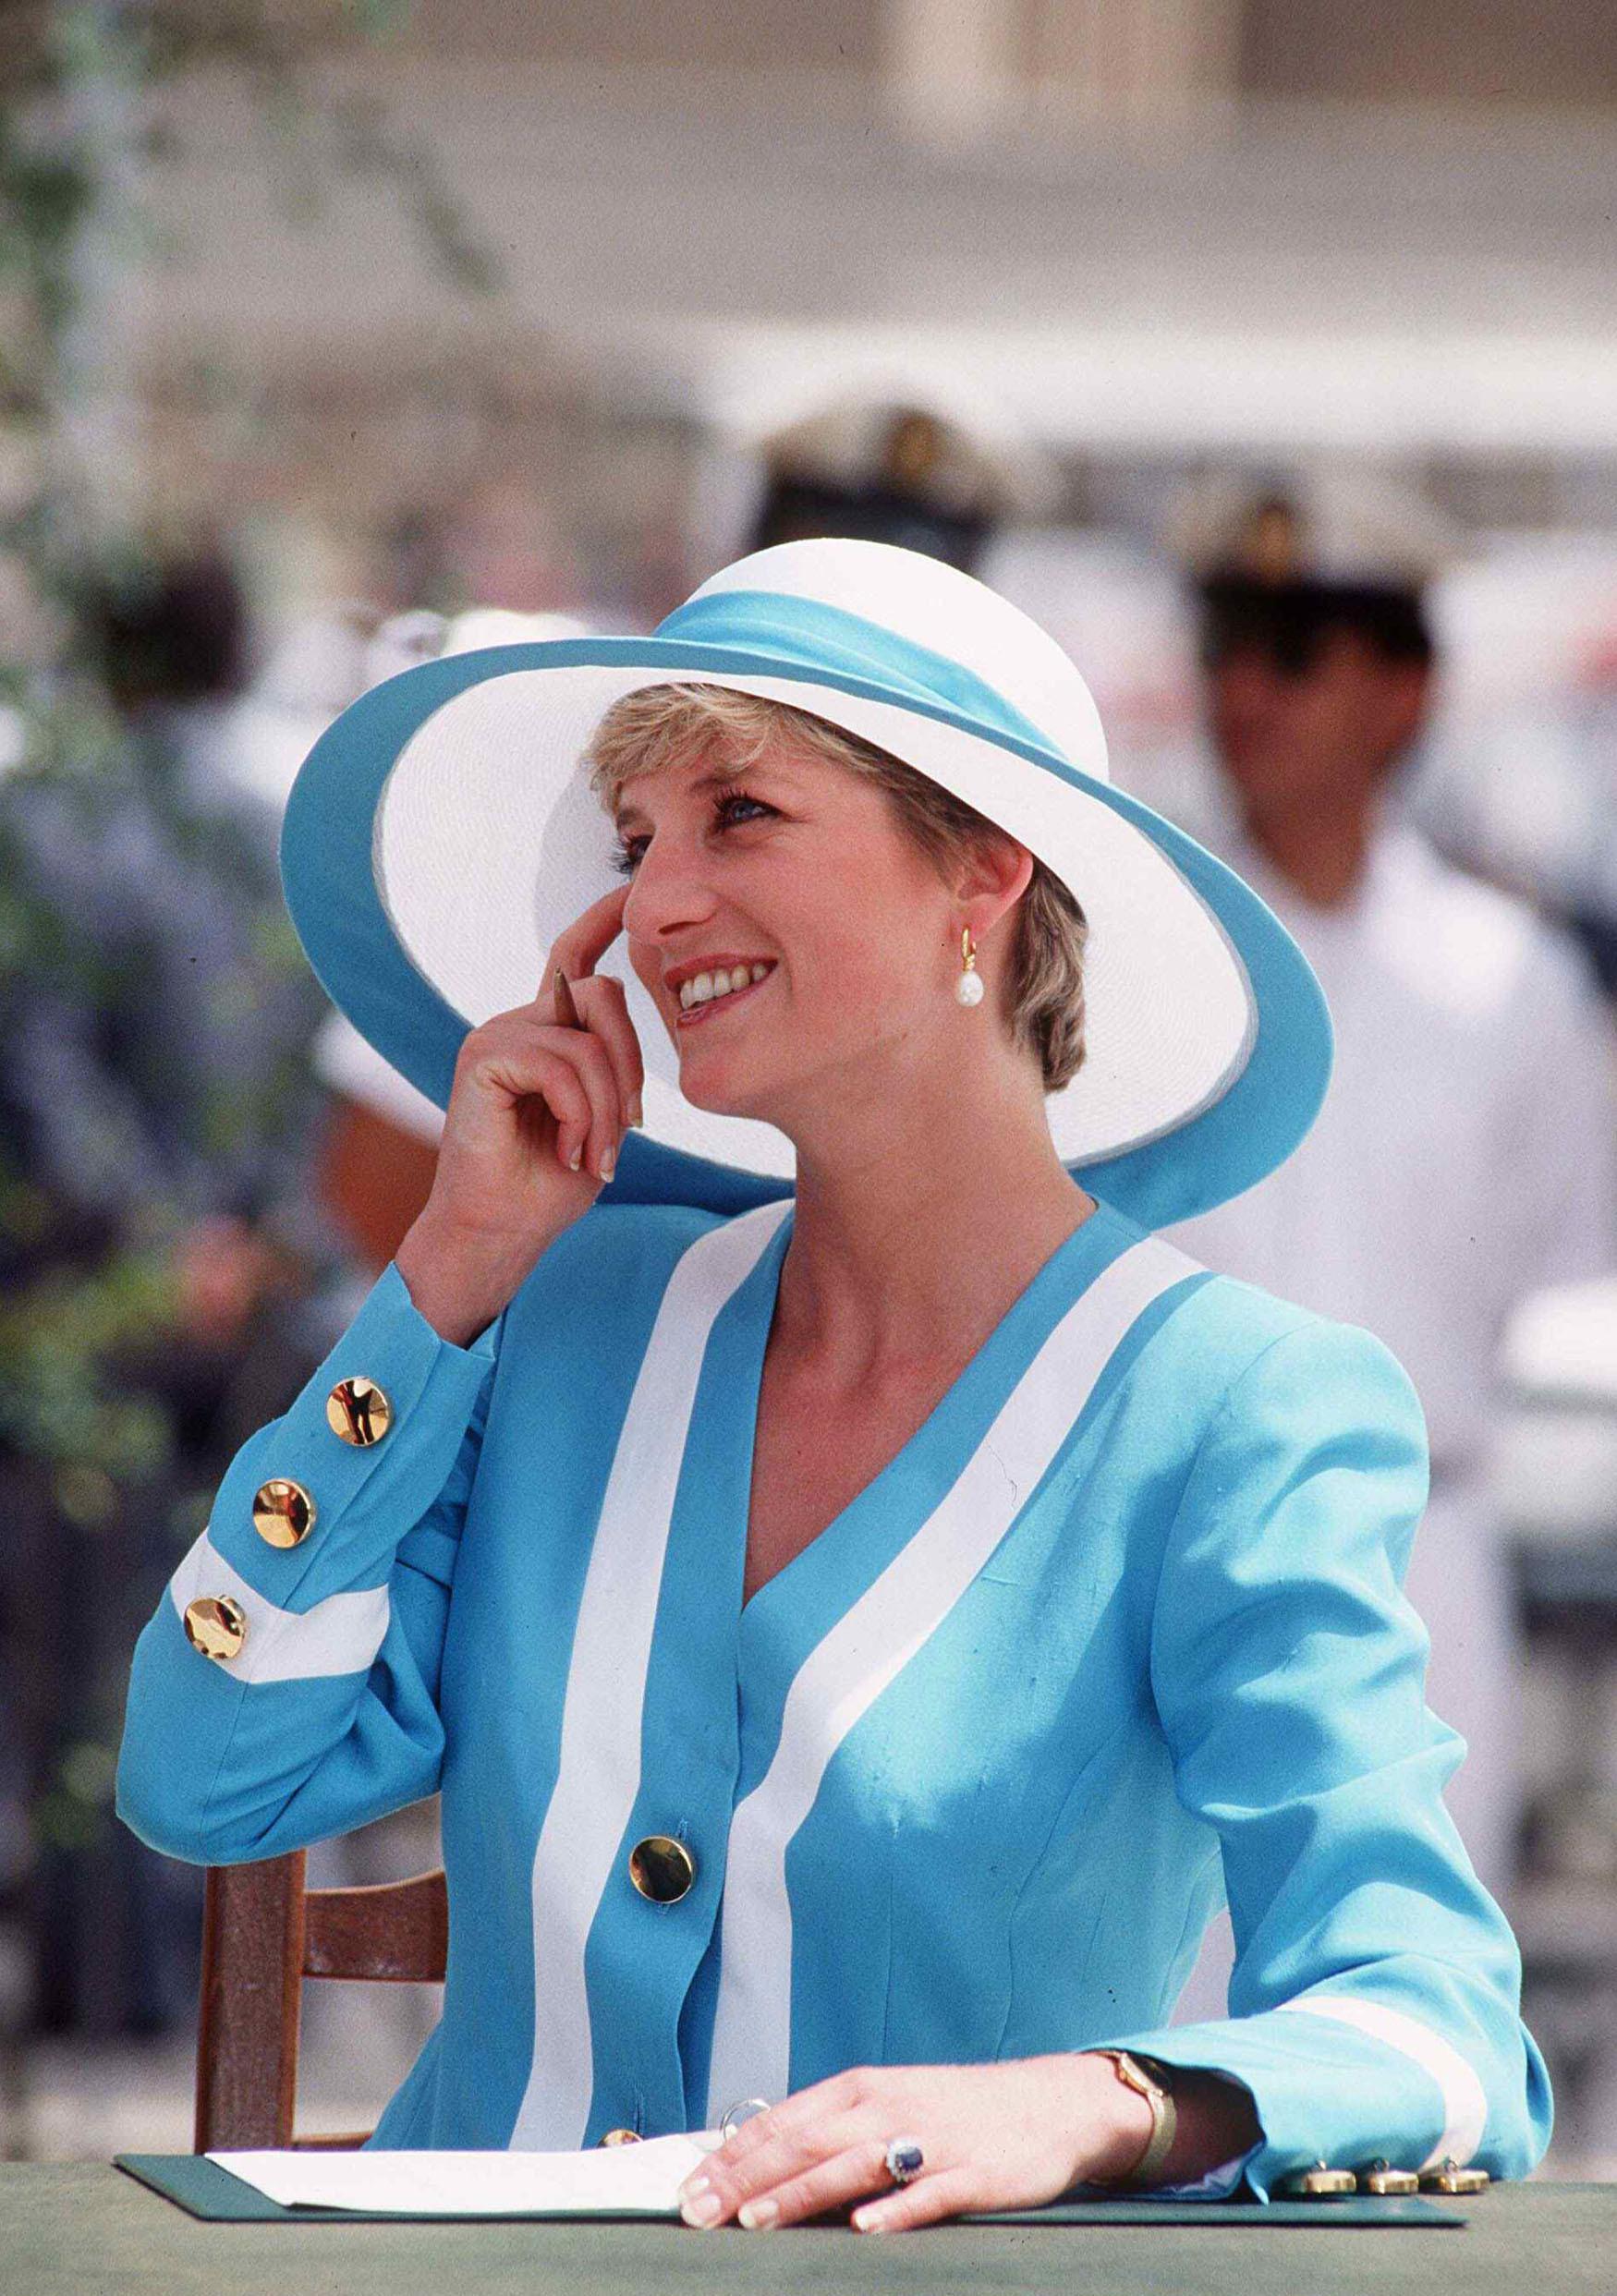 It's not clear whether Princess Diana let Alfie wipe down his cheeks with the handkerchiefs he was supposed to give her. Credit: PA